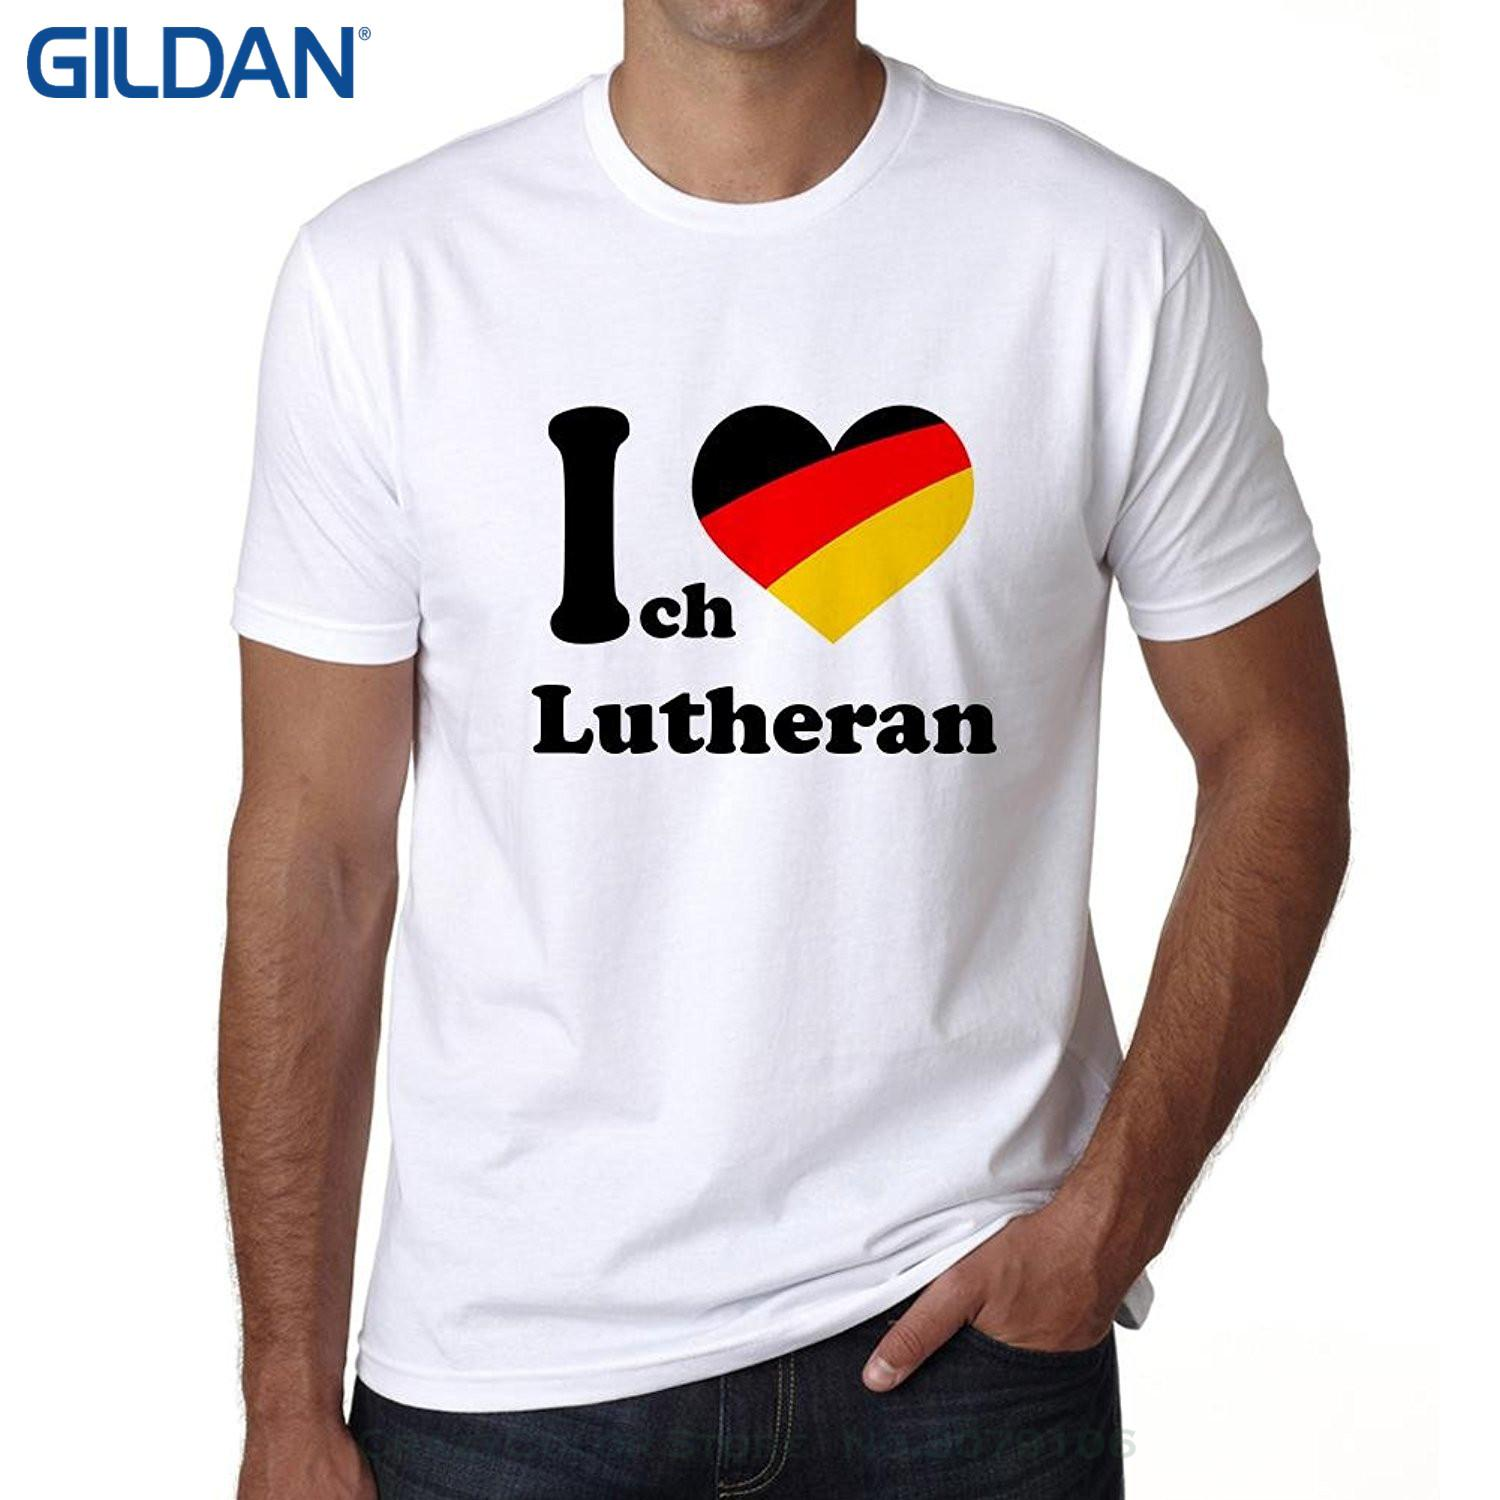 Remise en gros Populaire Style Homme T-shirt Ich Liebe Luthérien, Tshirt Hommes, J'aime City Shirt, German City Tshirt Hommes